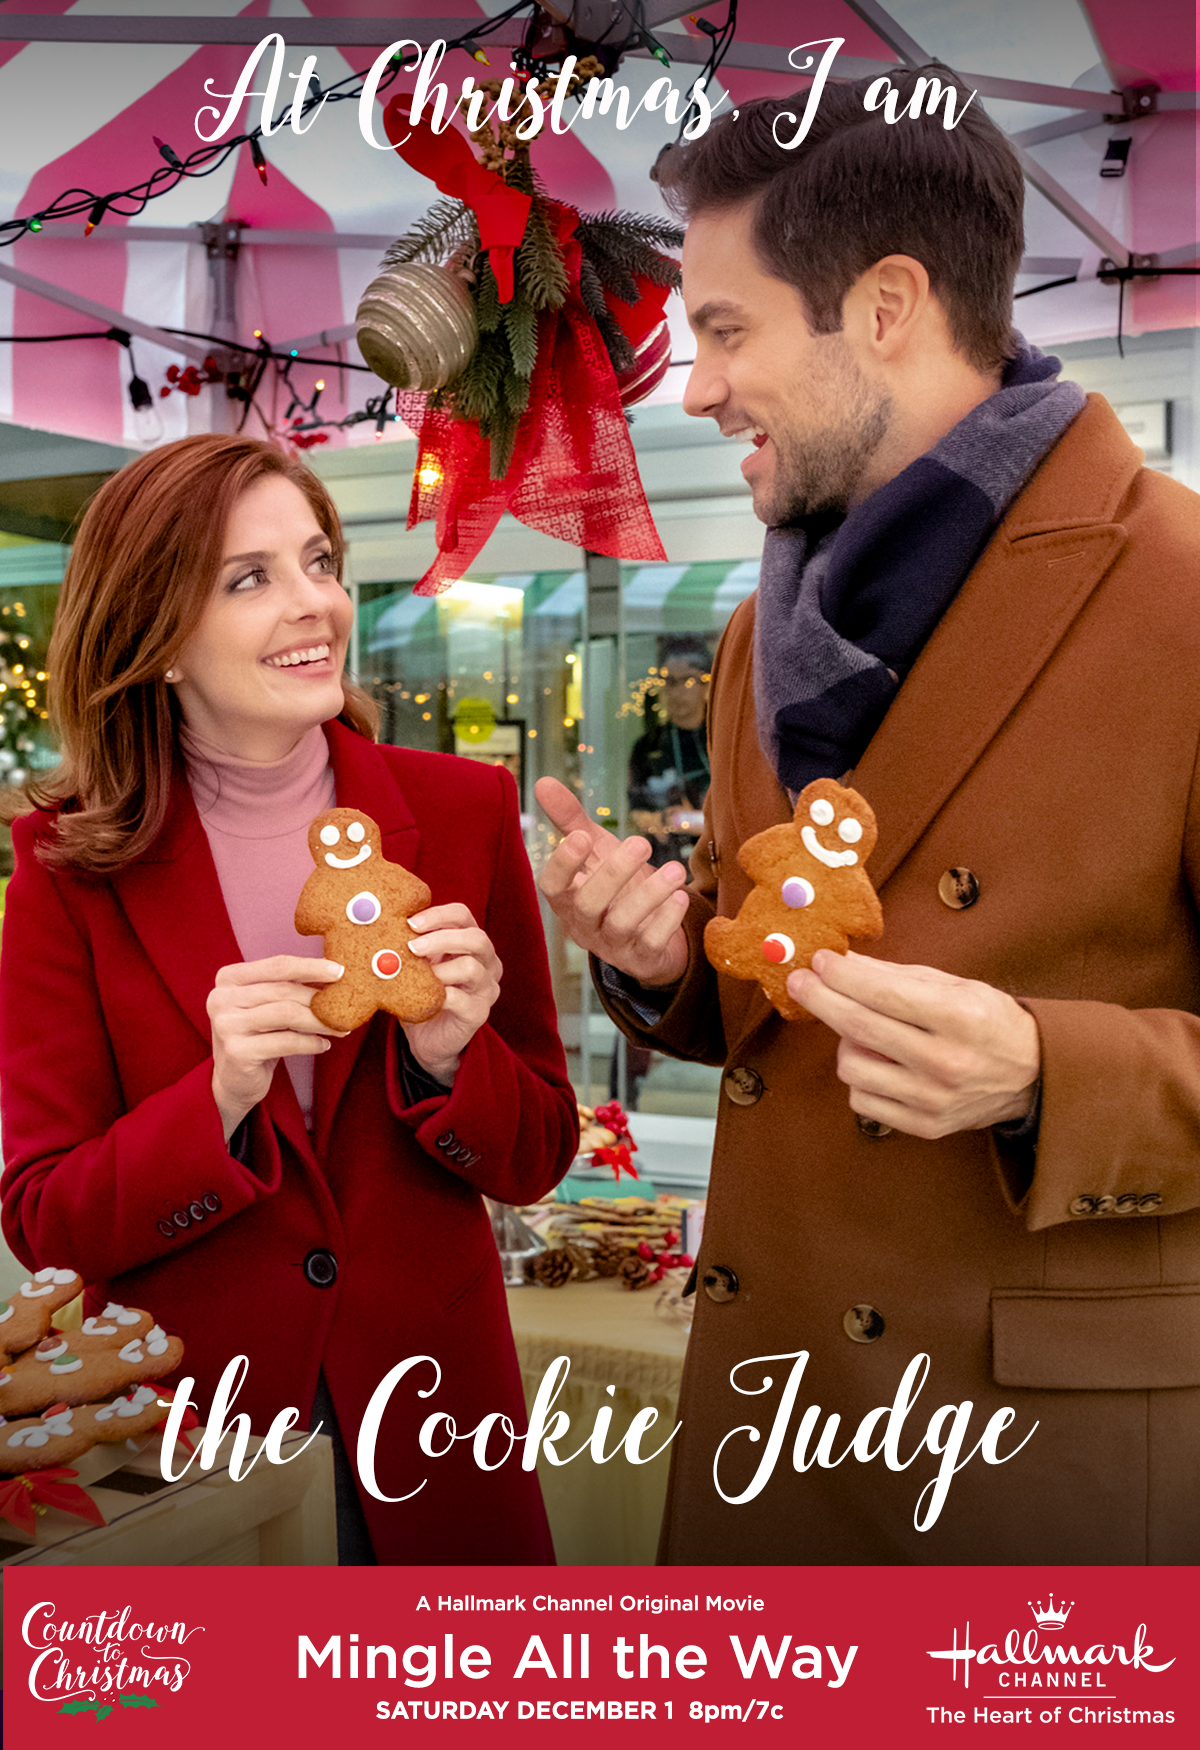 sweepstakes CountdownToChristmas and HallmarkChannel